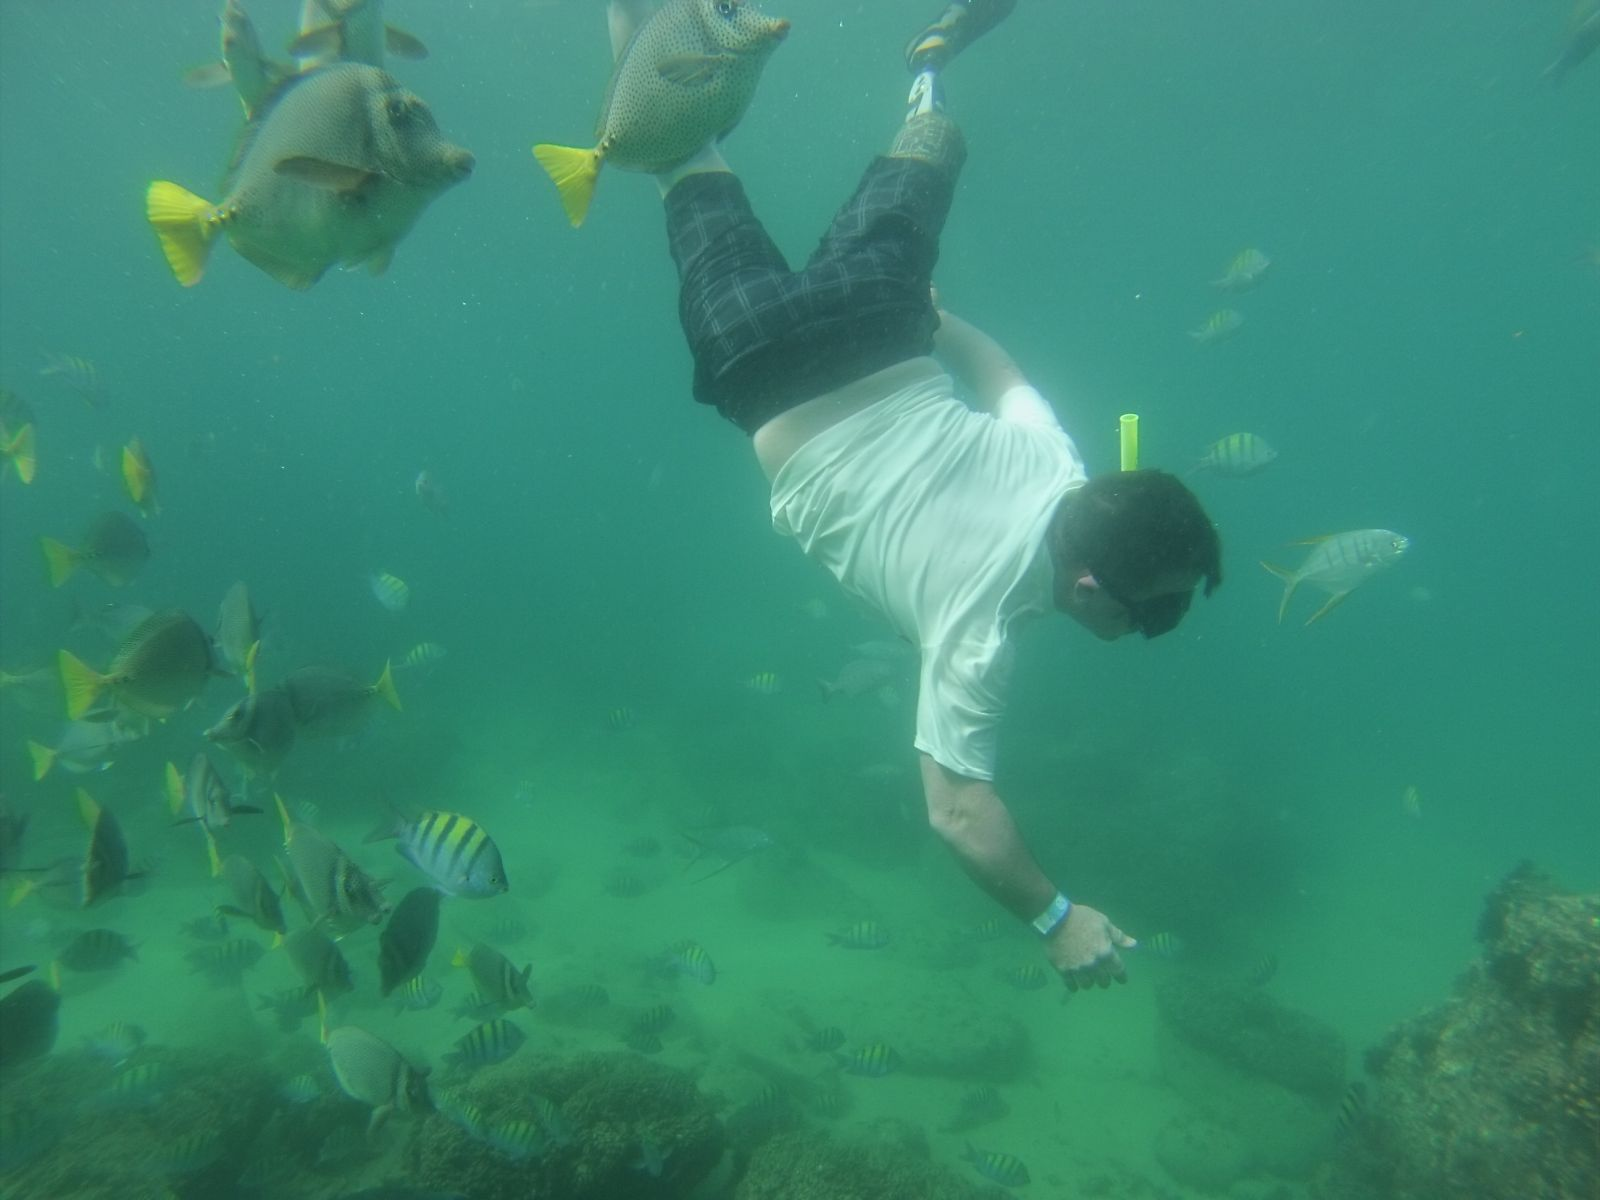 One of our patients snorkeling in Mexico with his above the knee prosthesis!